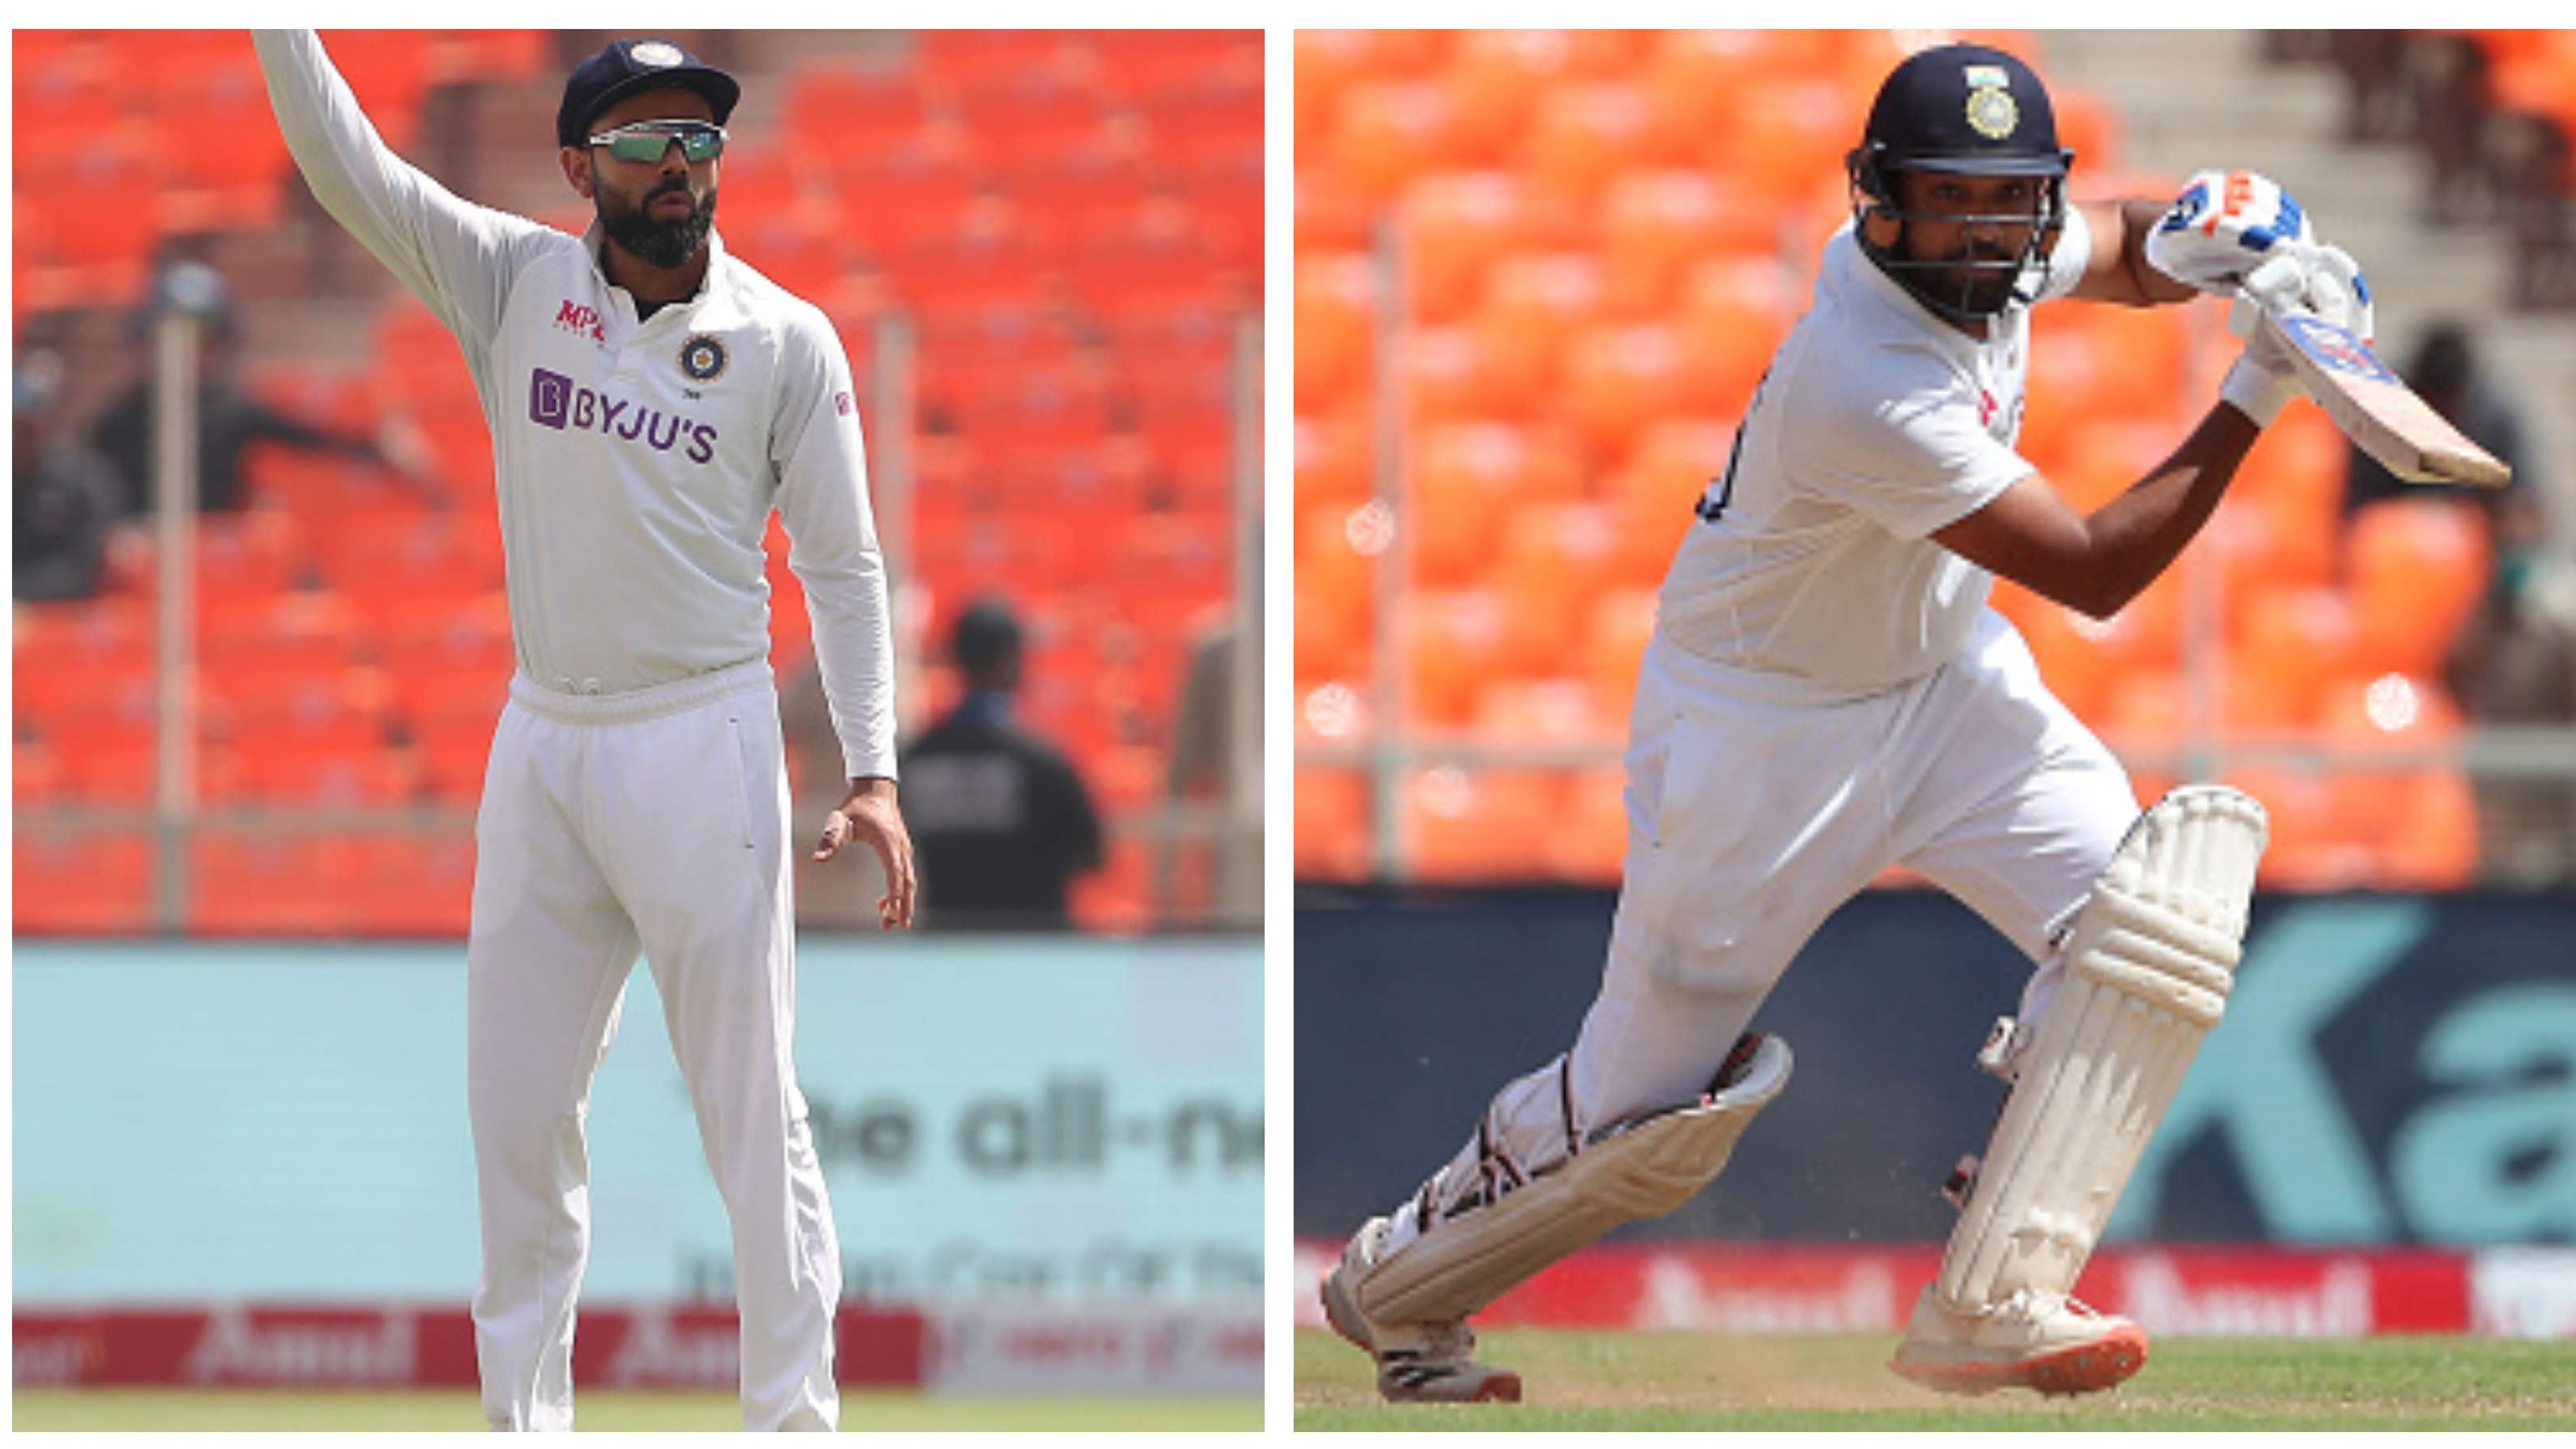 IND v ENG 2021: Rohit Sharma's ton in Chennai was the defining moment, says Virat Kohli after Test series win